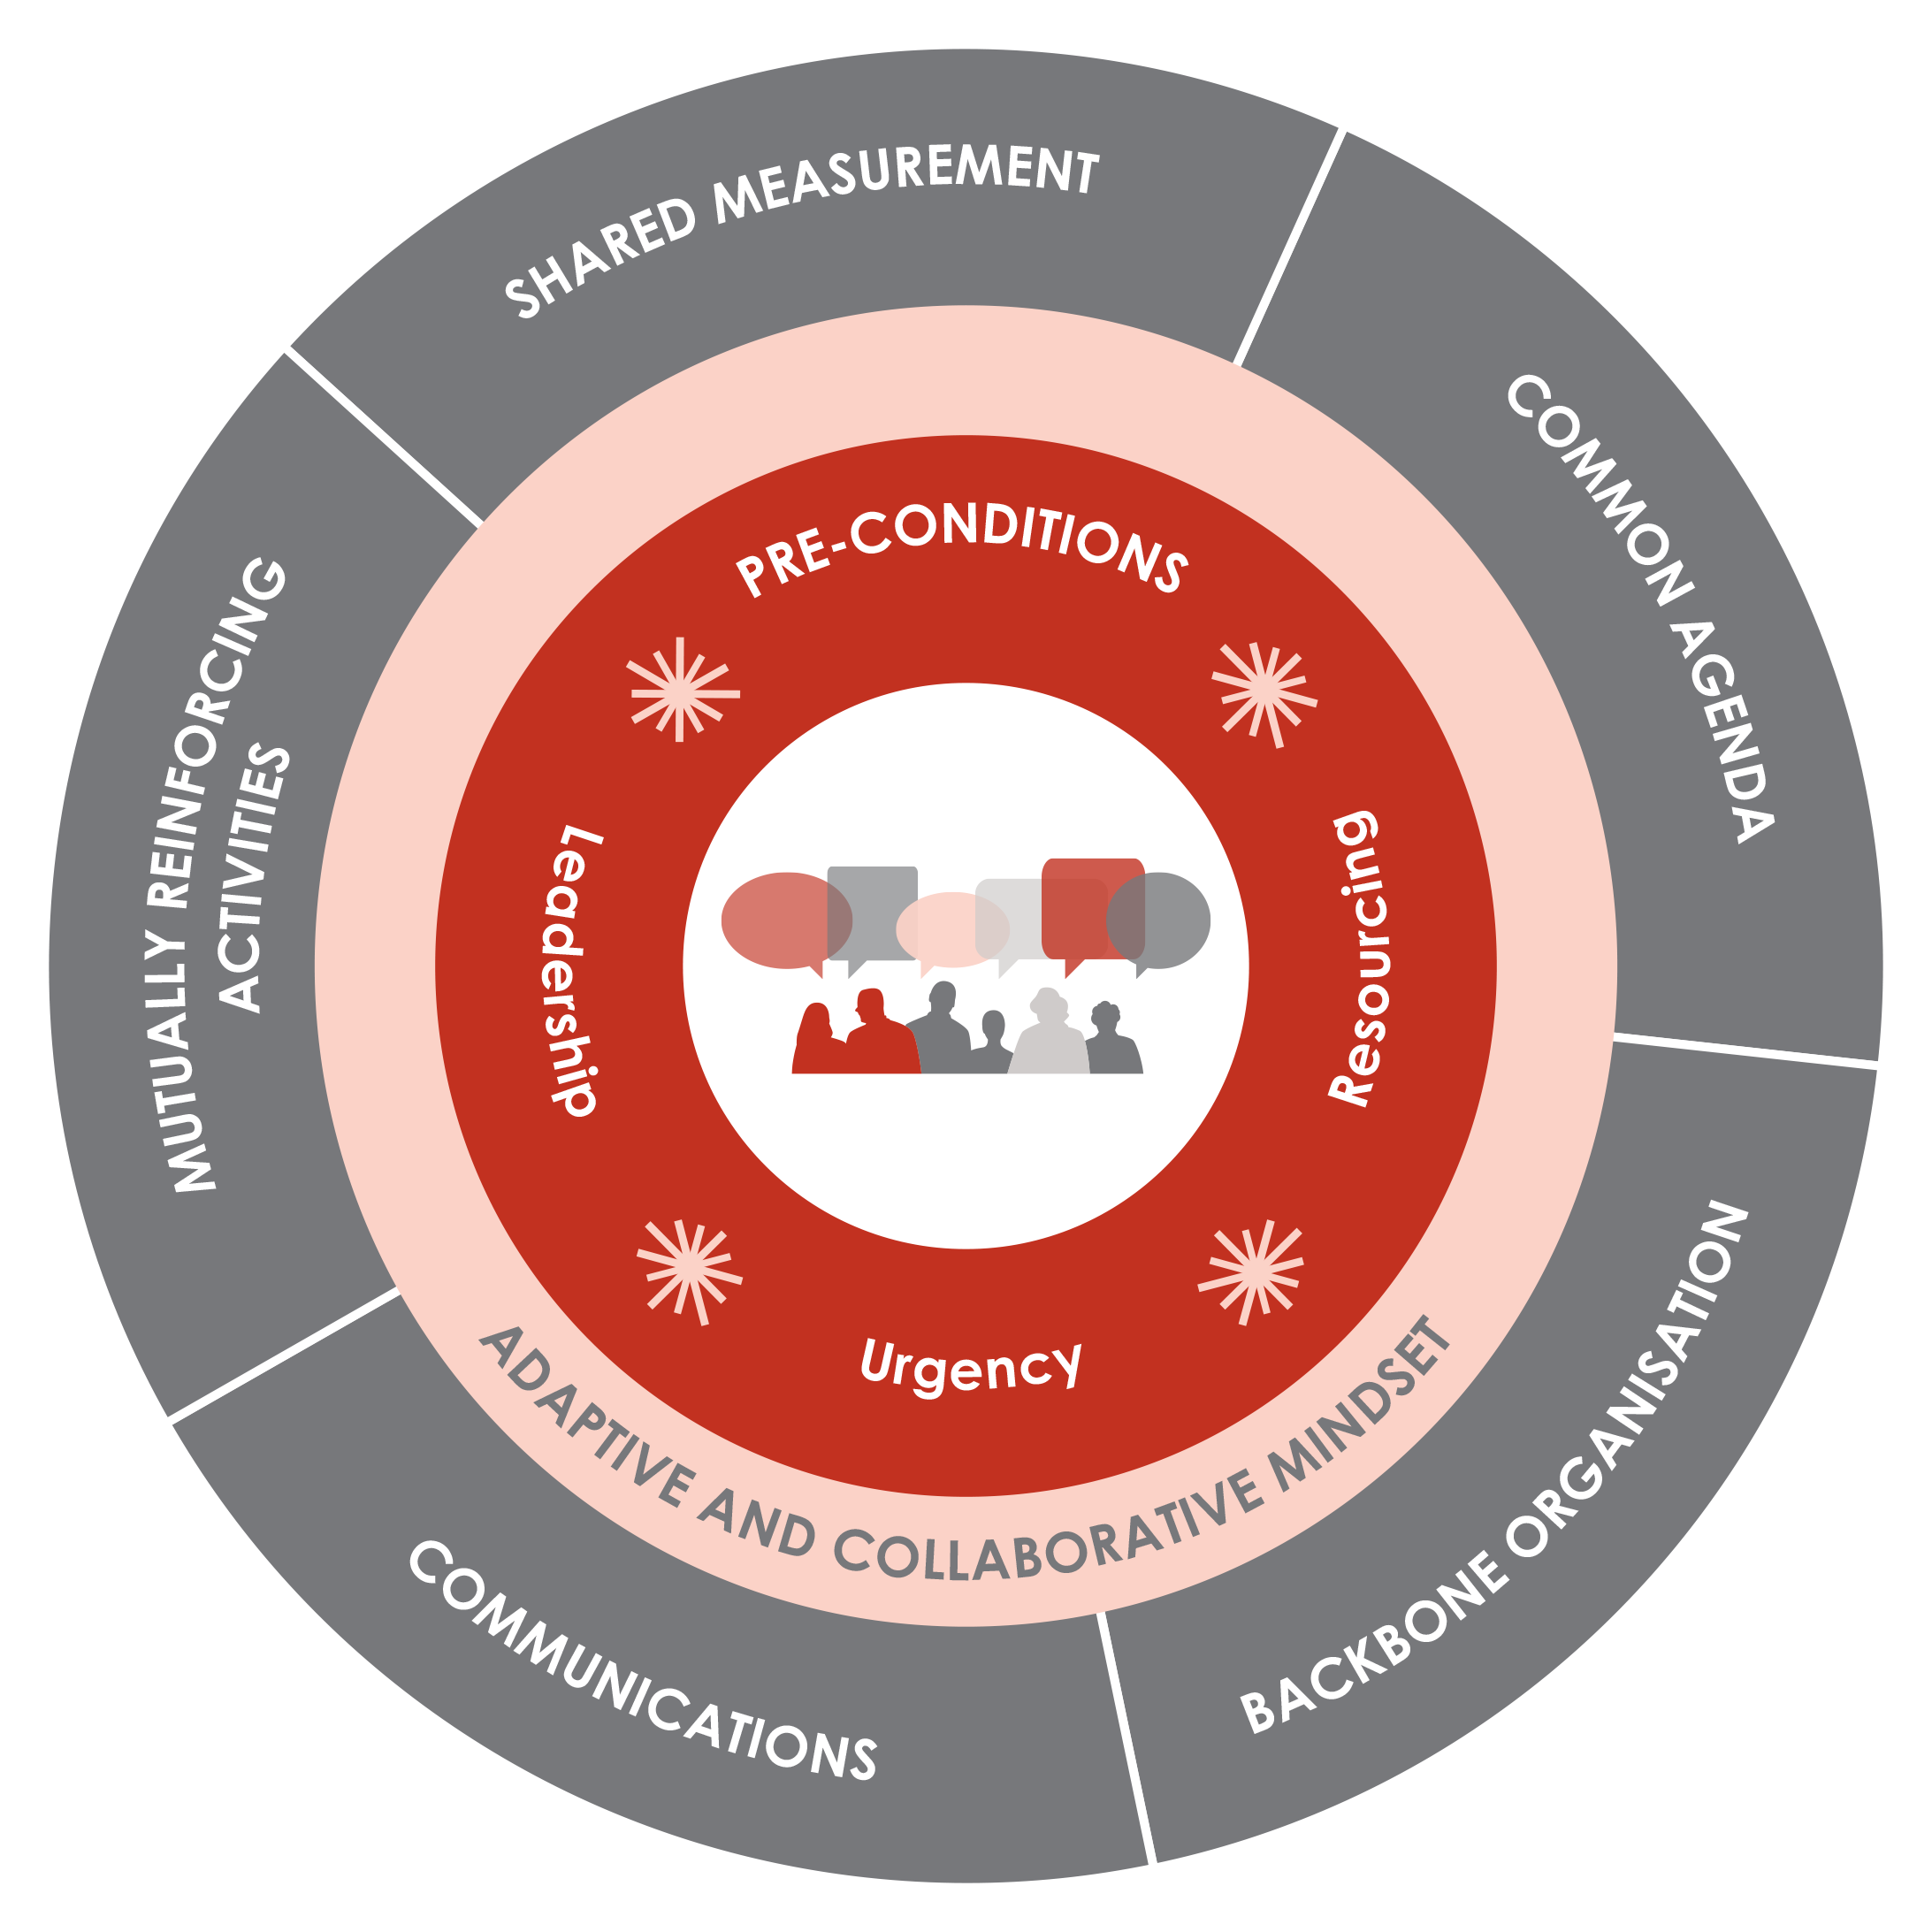 Copy of EXAMPLE: Collective impact